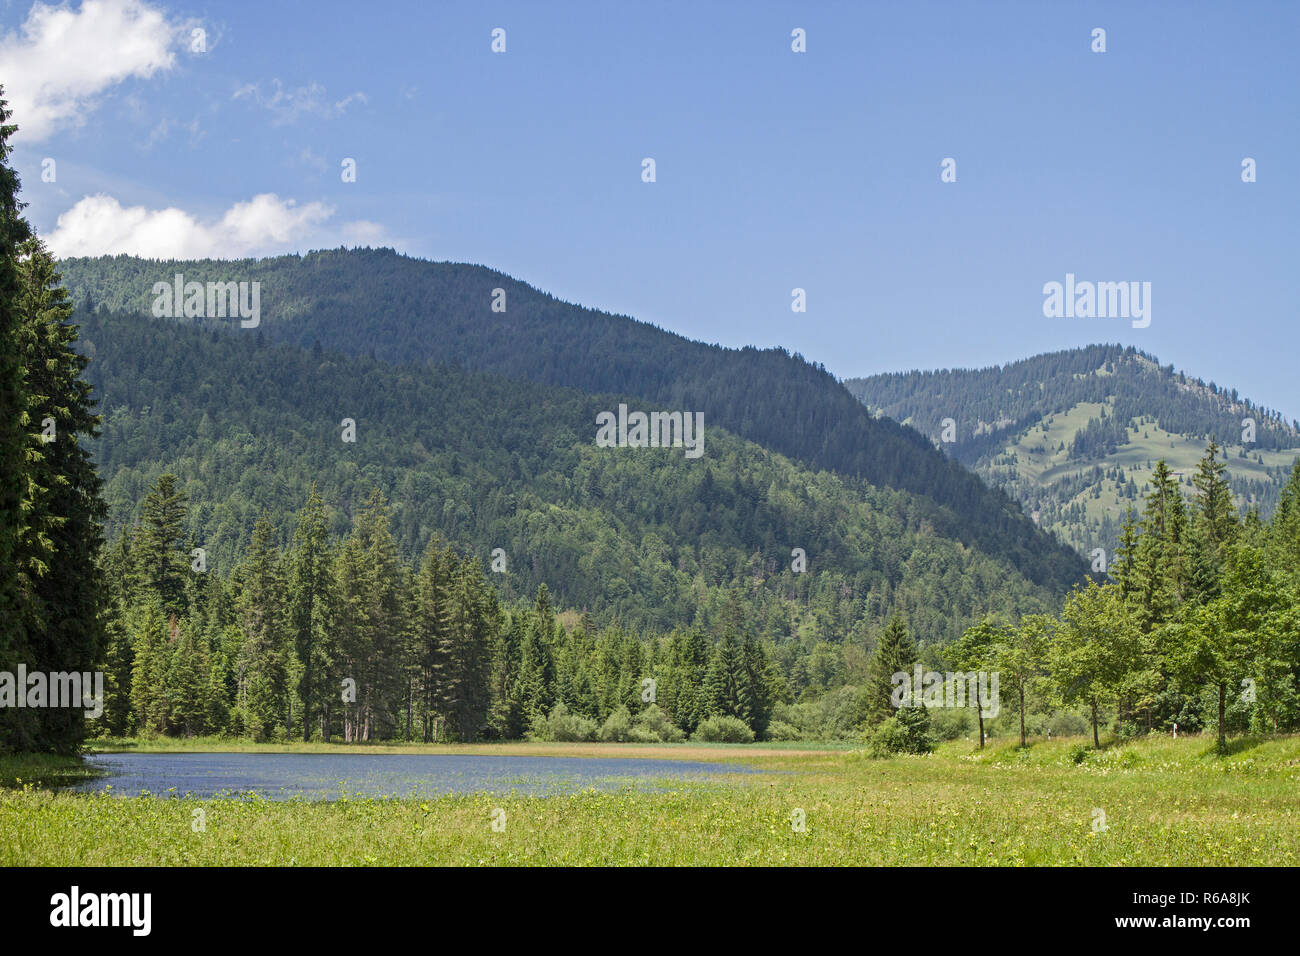 Idyllic Small Lake In Ursprungs Valley South Of Bayrischzell - Stock Image